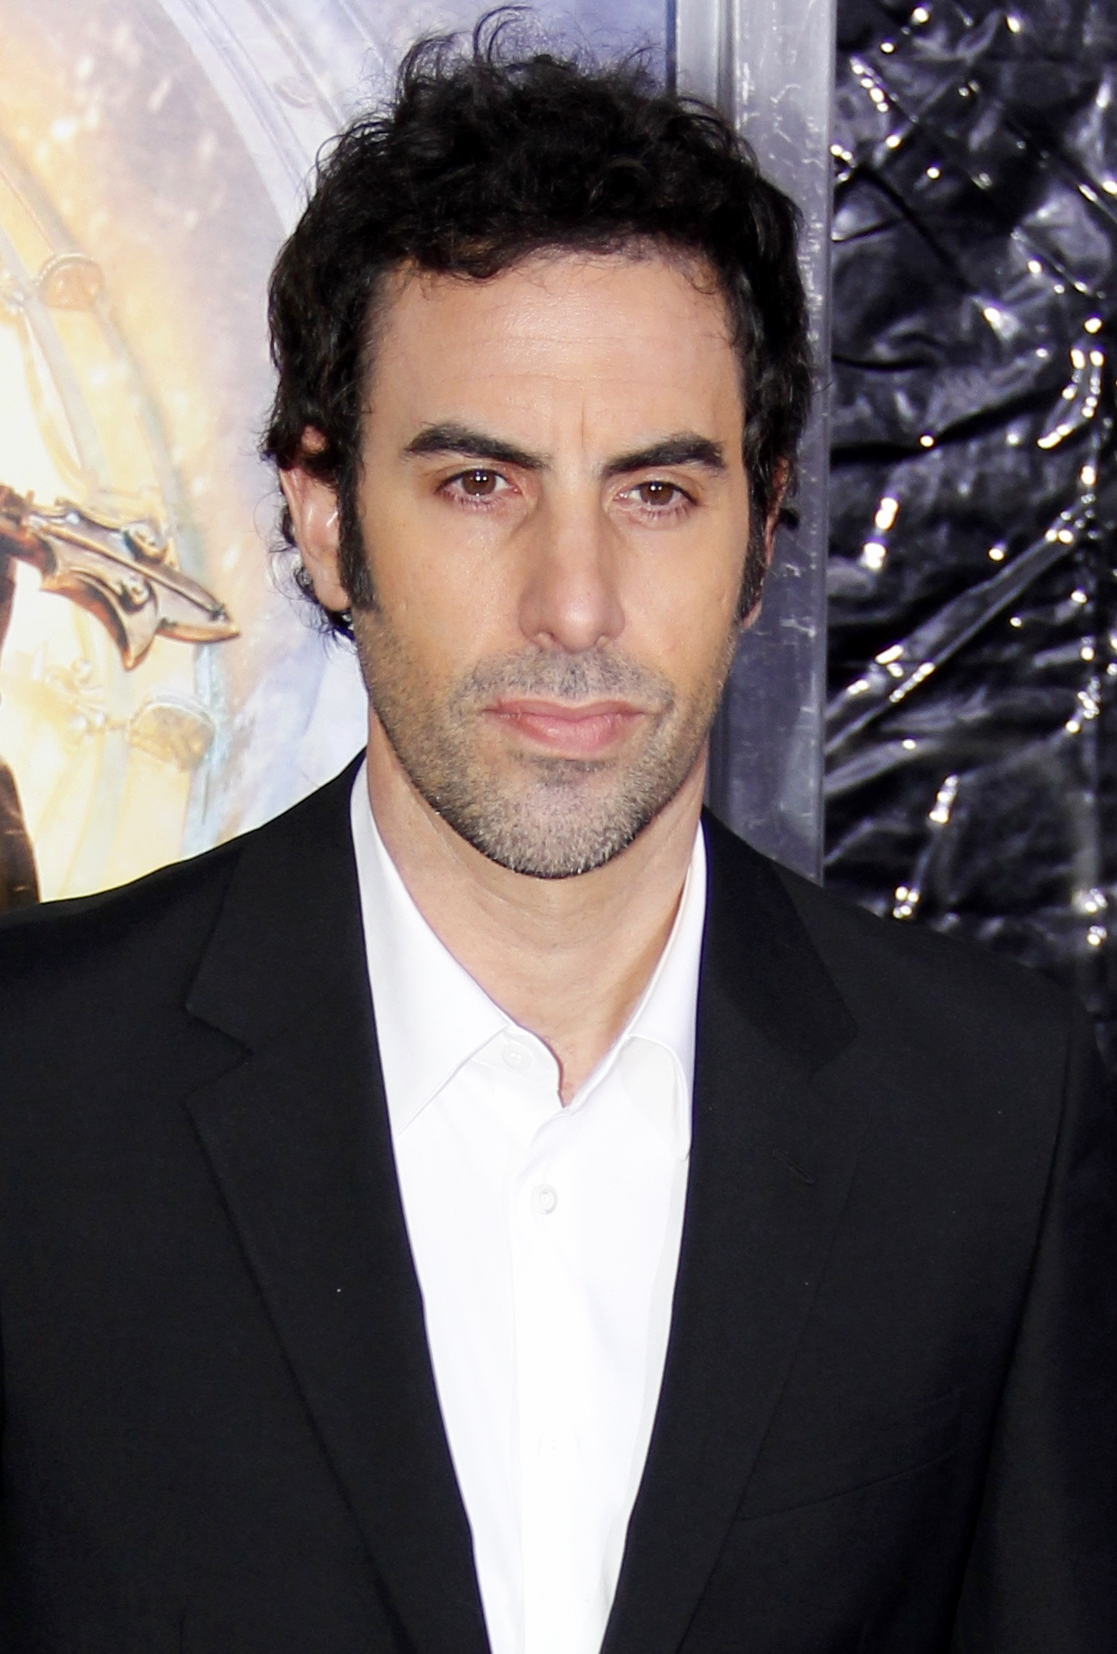 https://upload.wikimedia.org/wikipedia/commons/4/46/Sacha_Baron_Cohen,_2011.jpg